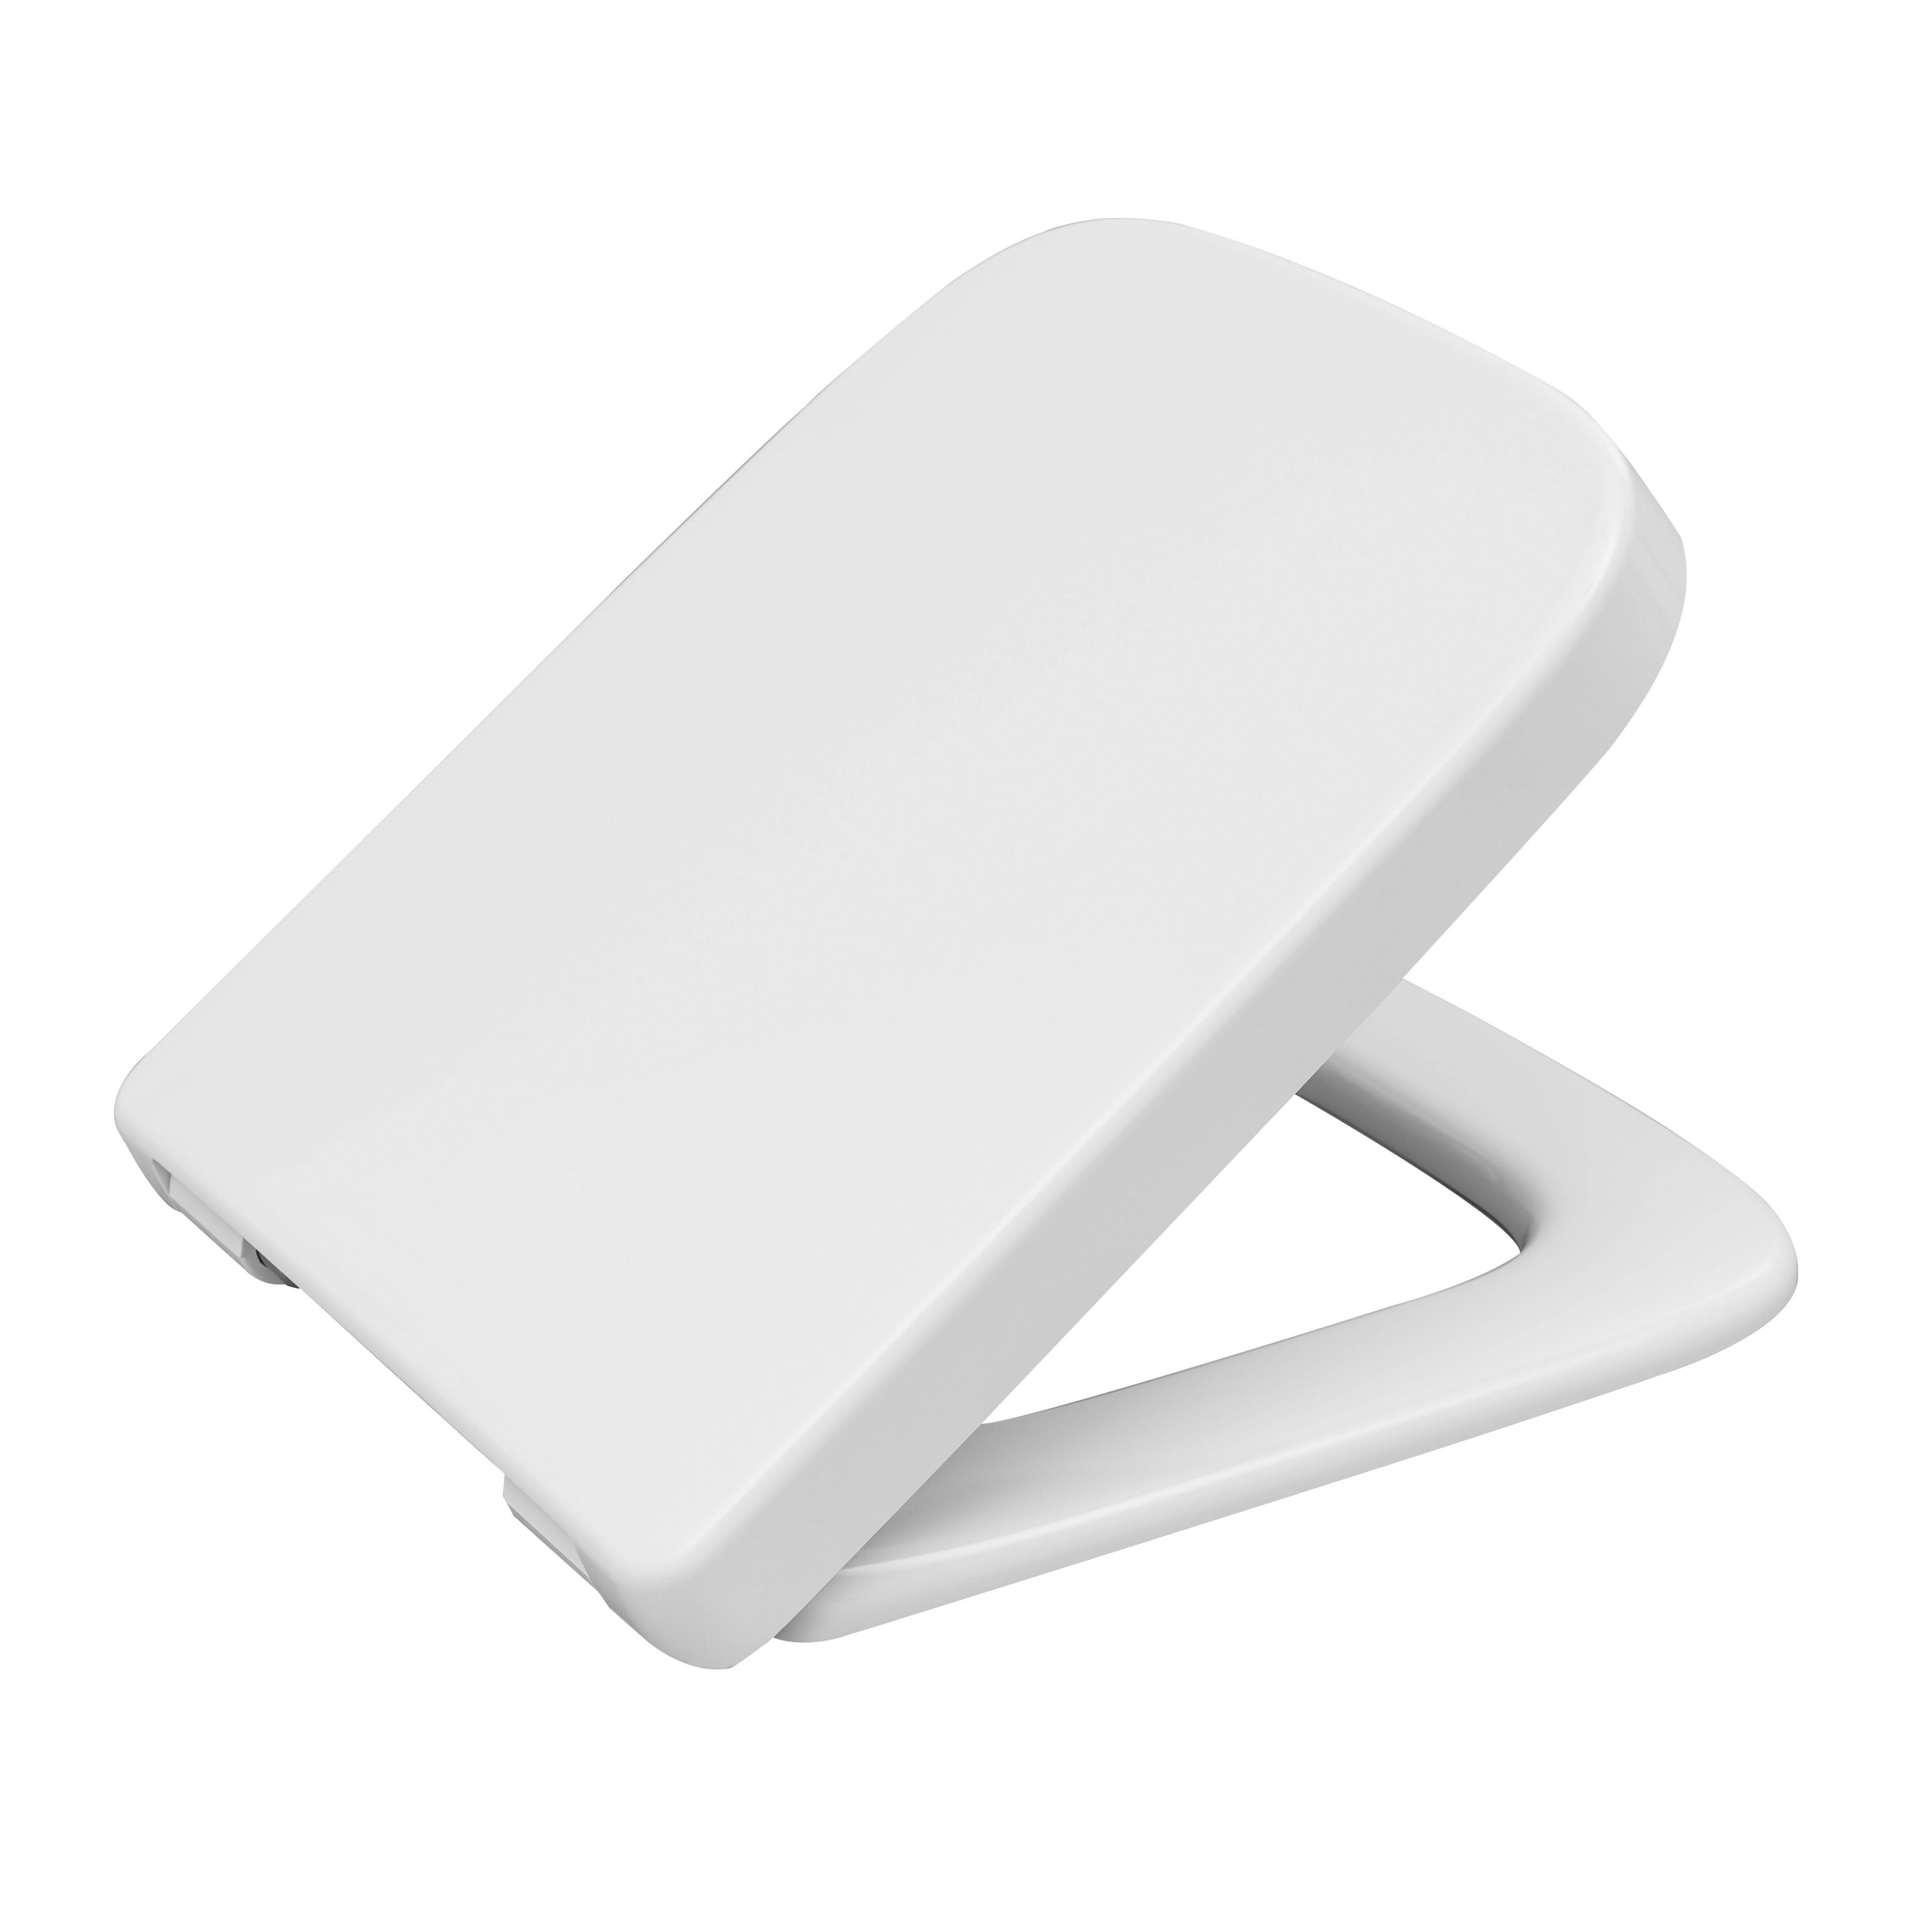 duravit soft close toilet seat fitting instructions